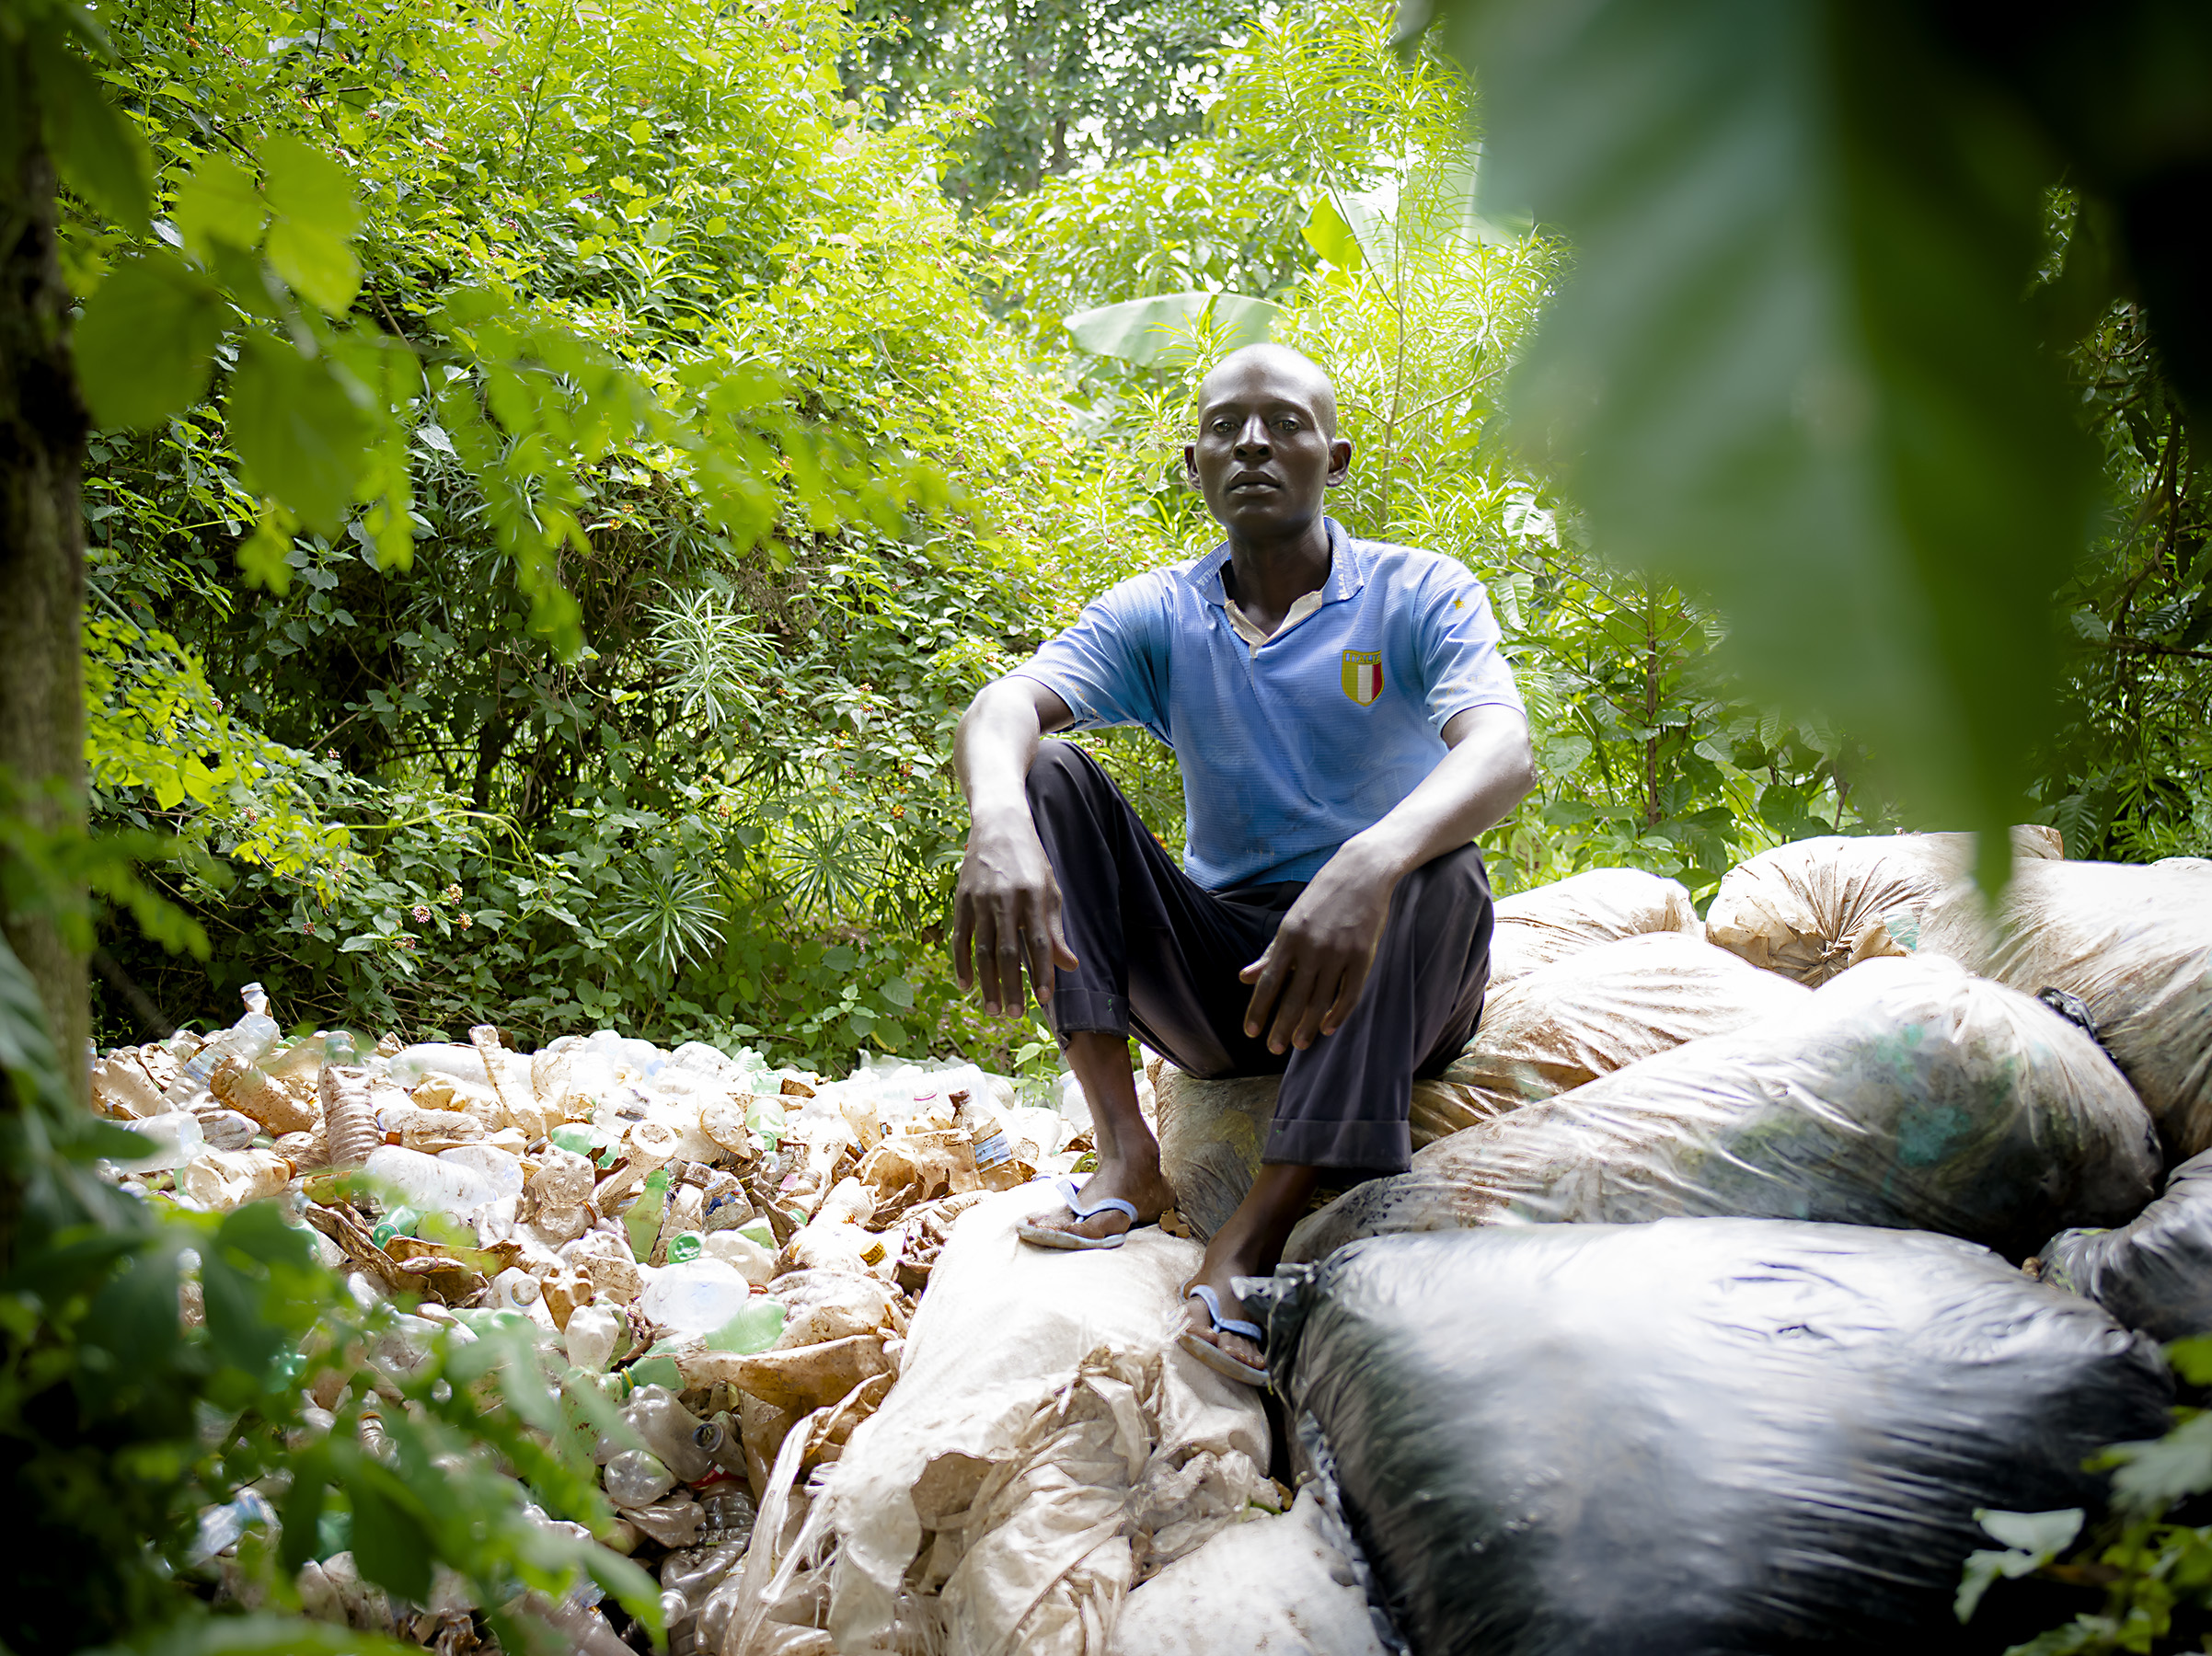 A man sita on bottles collected from the Njeru dumpsite.